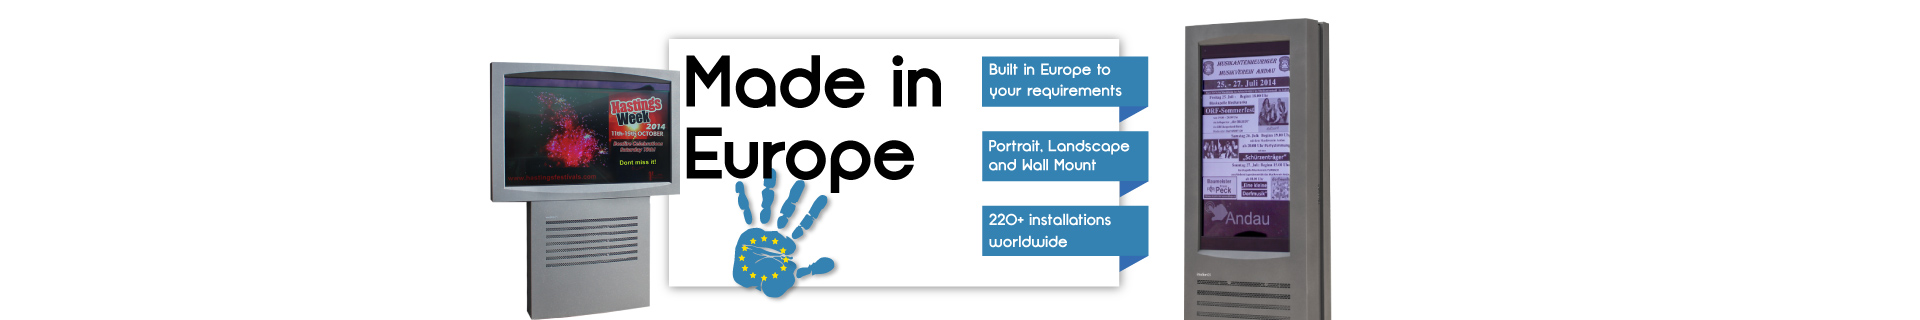 Digital Signage Banner for Europe